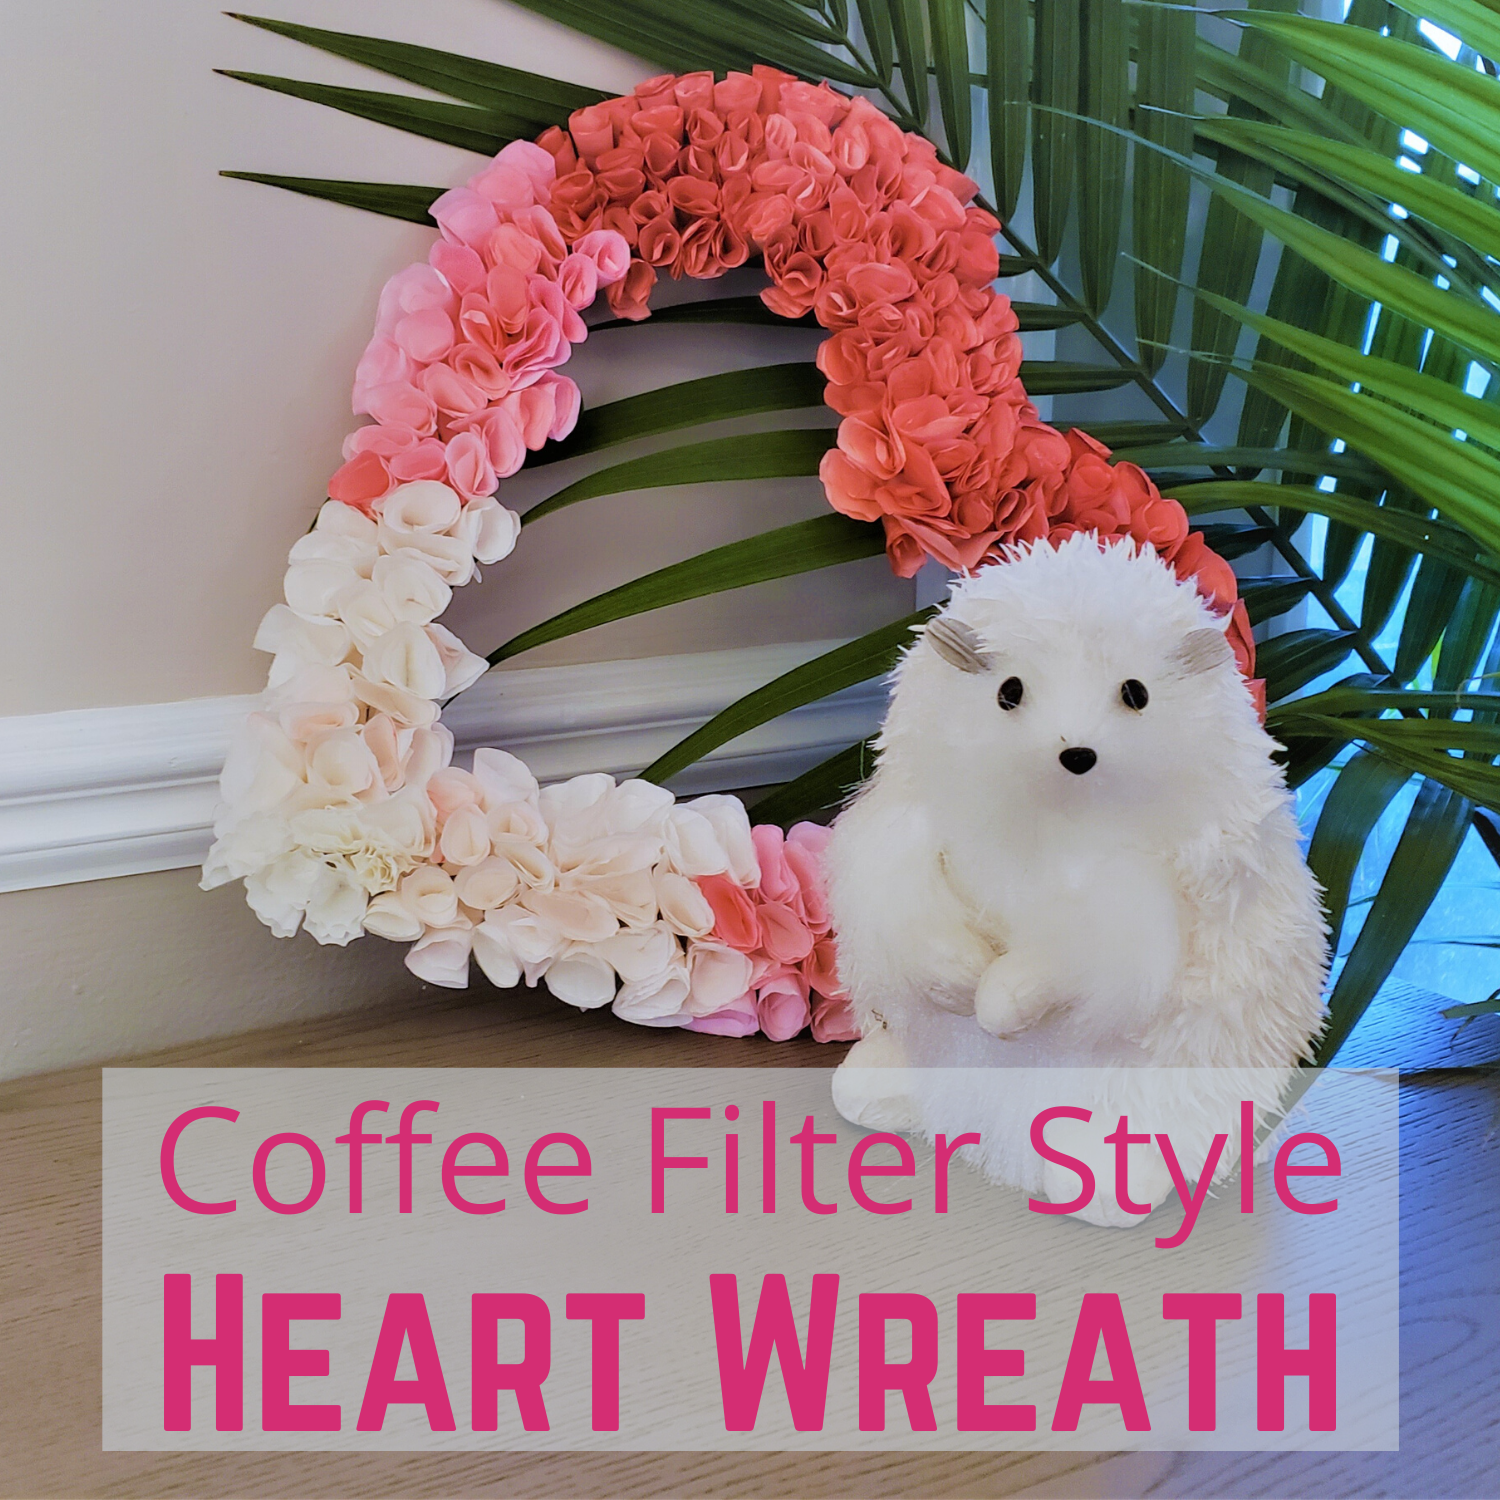 Coffee Filter Style Ombre Heart Wreath for Valentine's Day